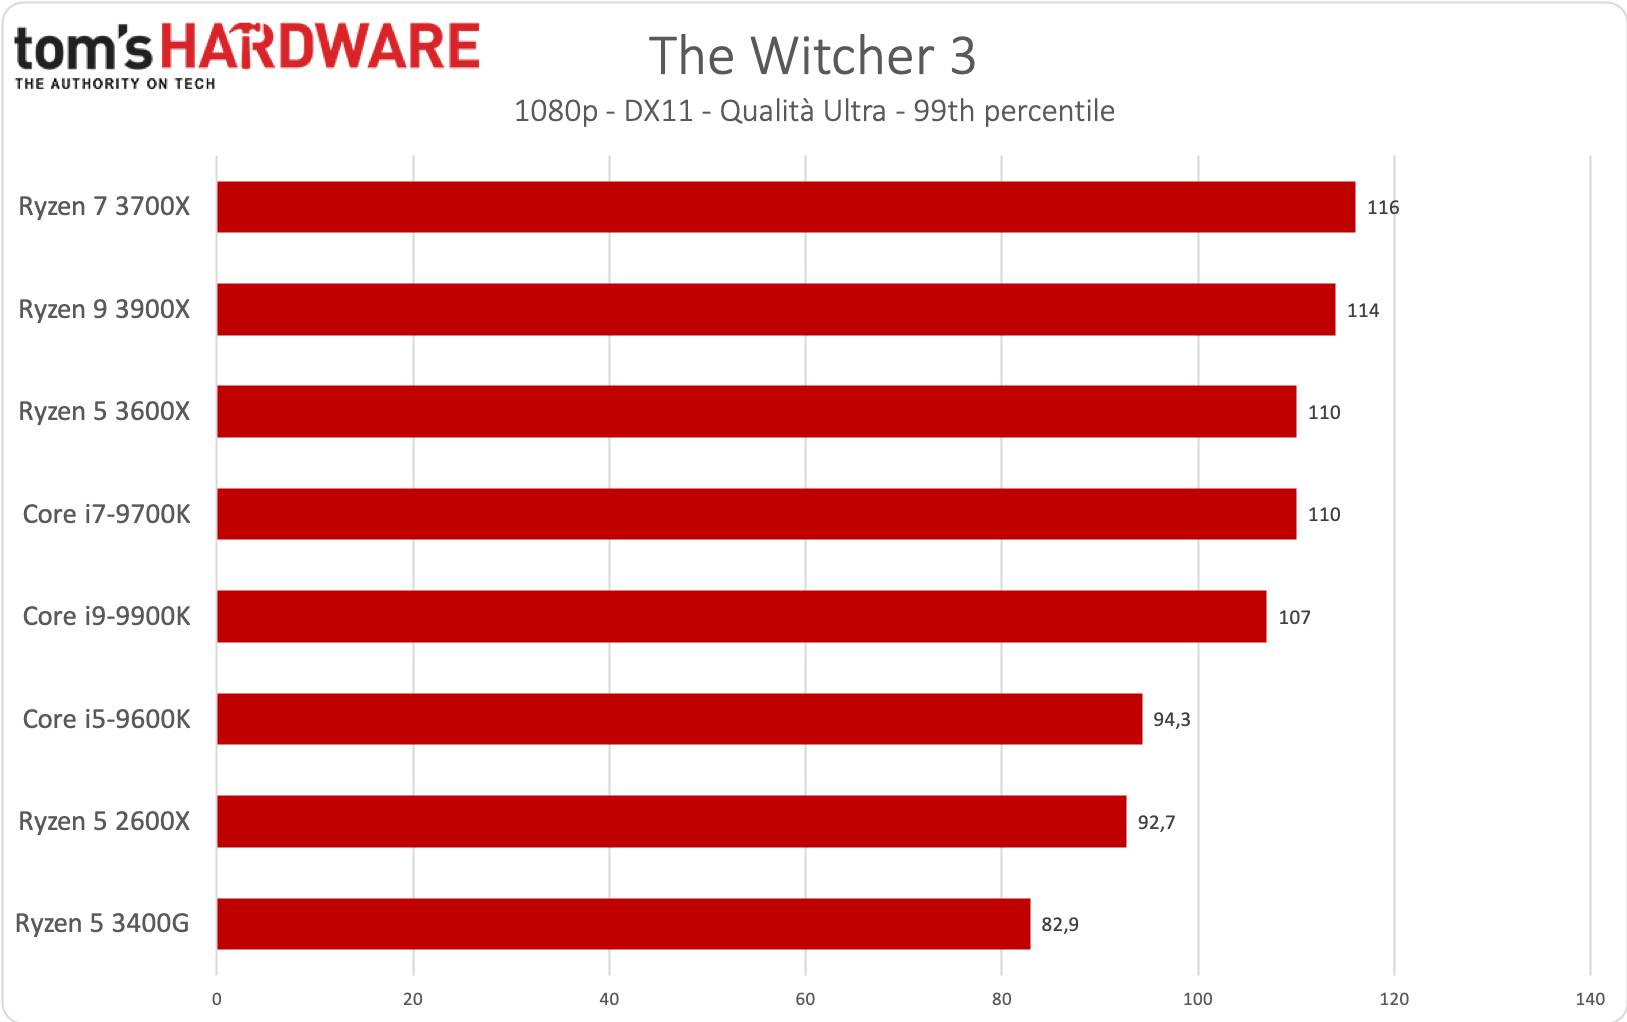 Ryzen 5 - The Witcher 3